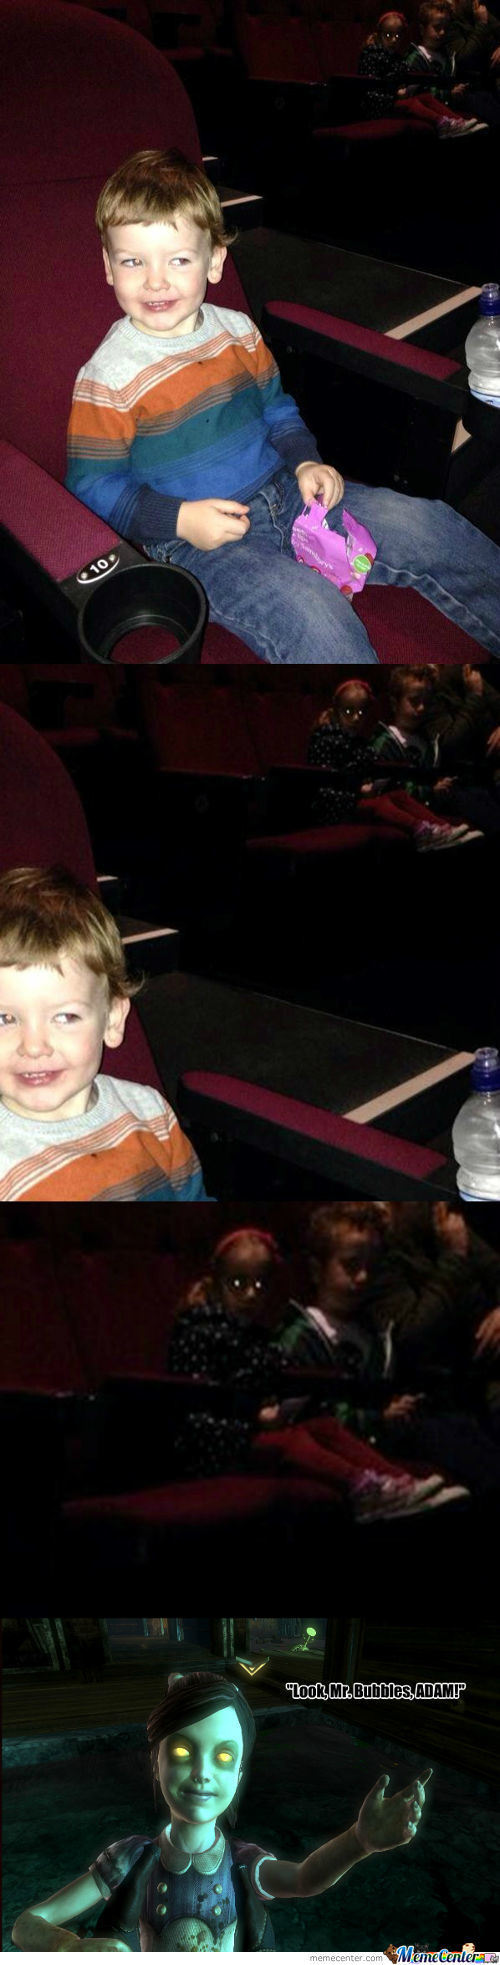 So Basically, My Baby Cousin Went To The Cinema For The First Time The Other Day....